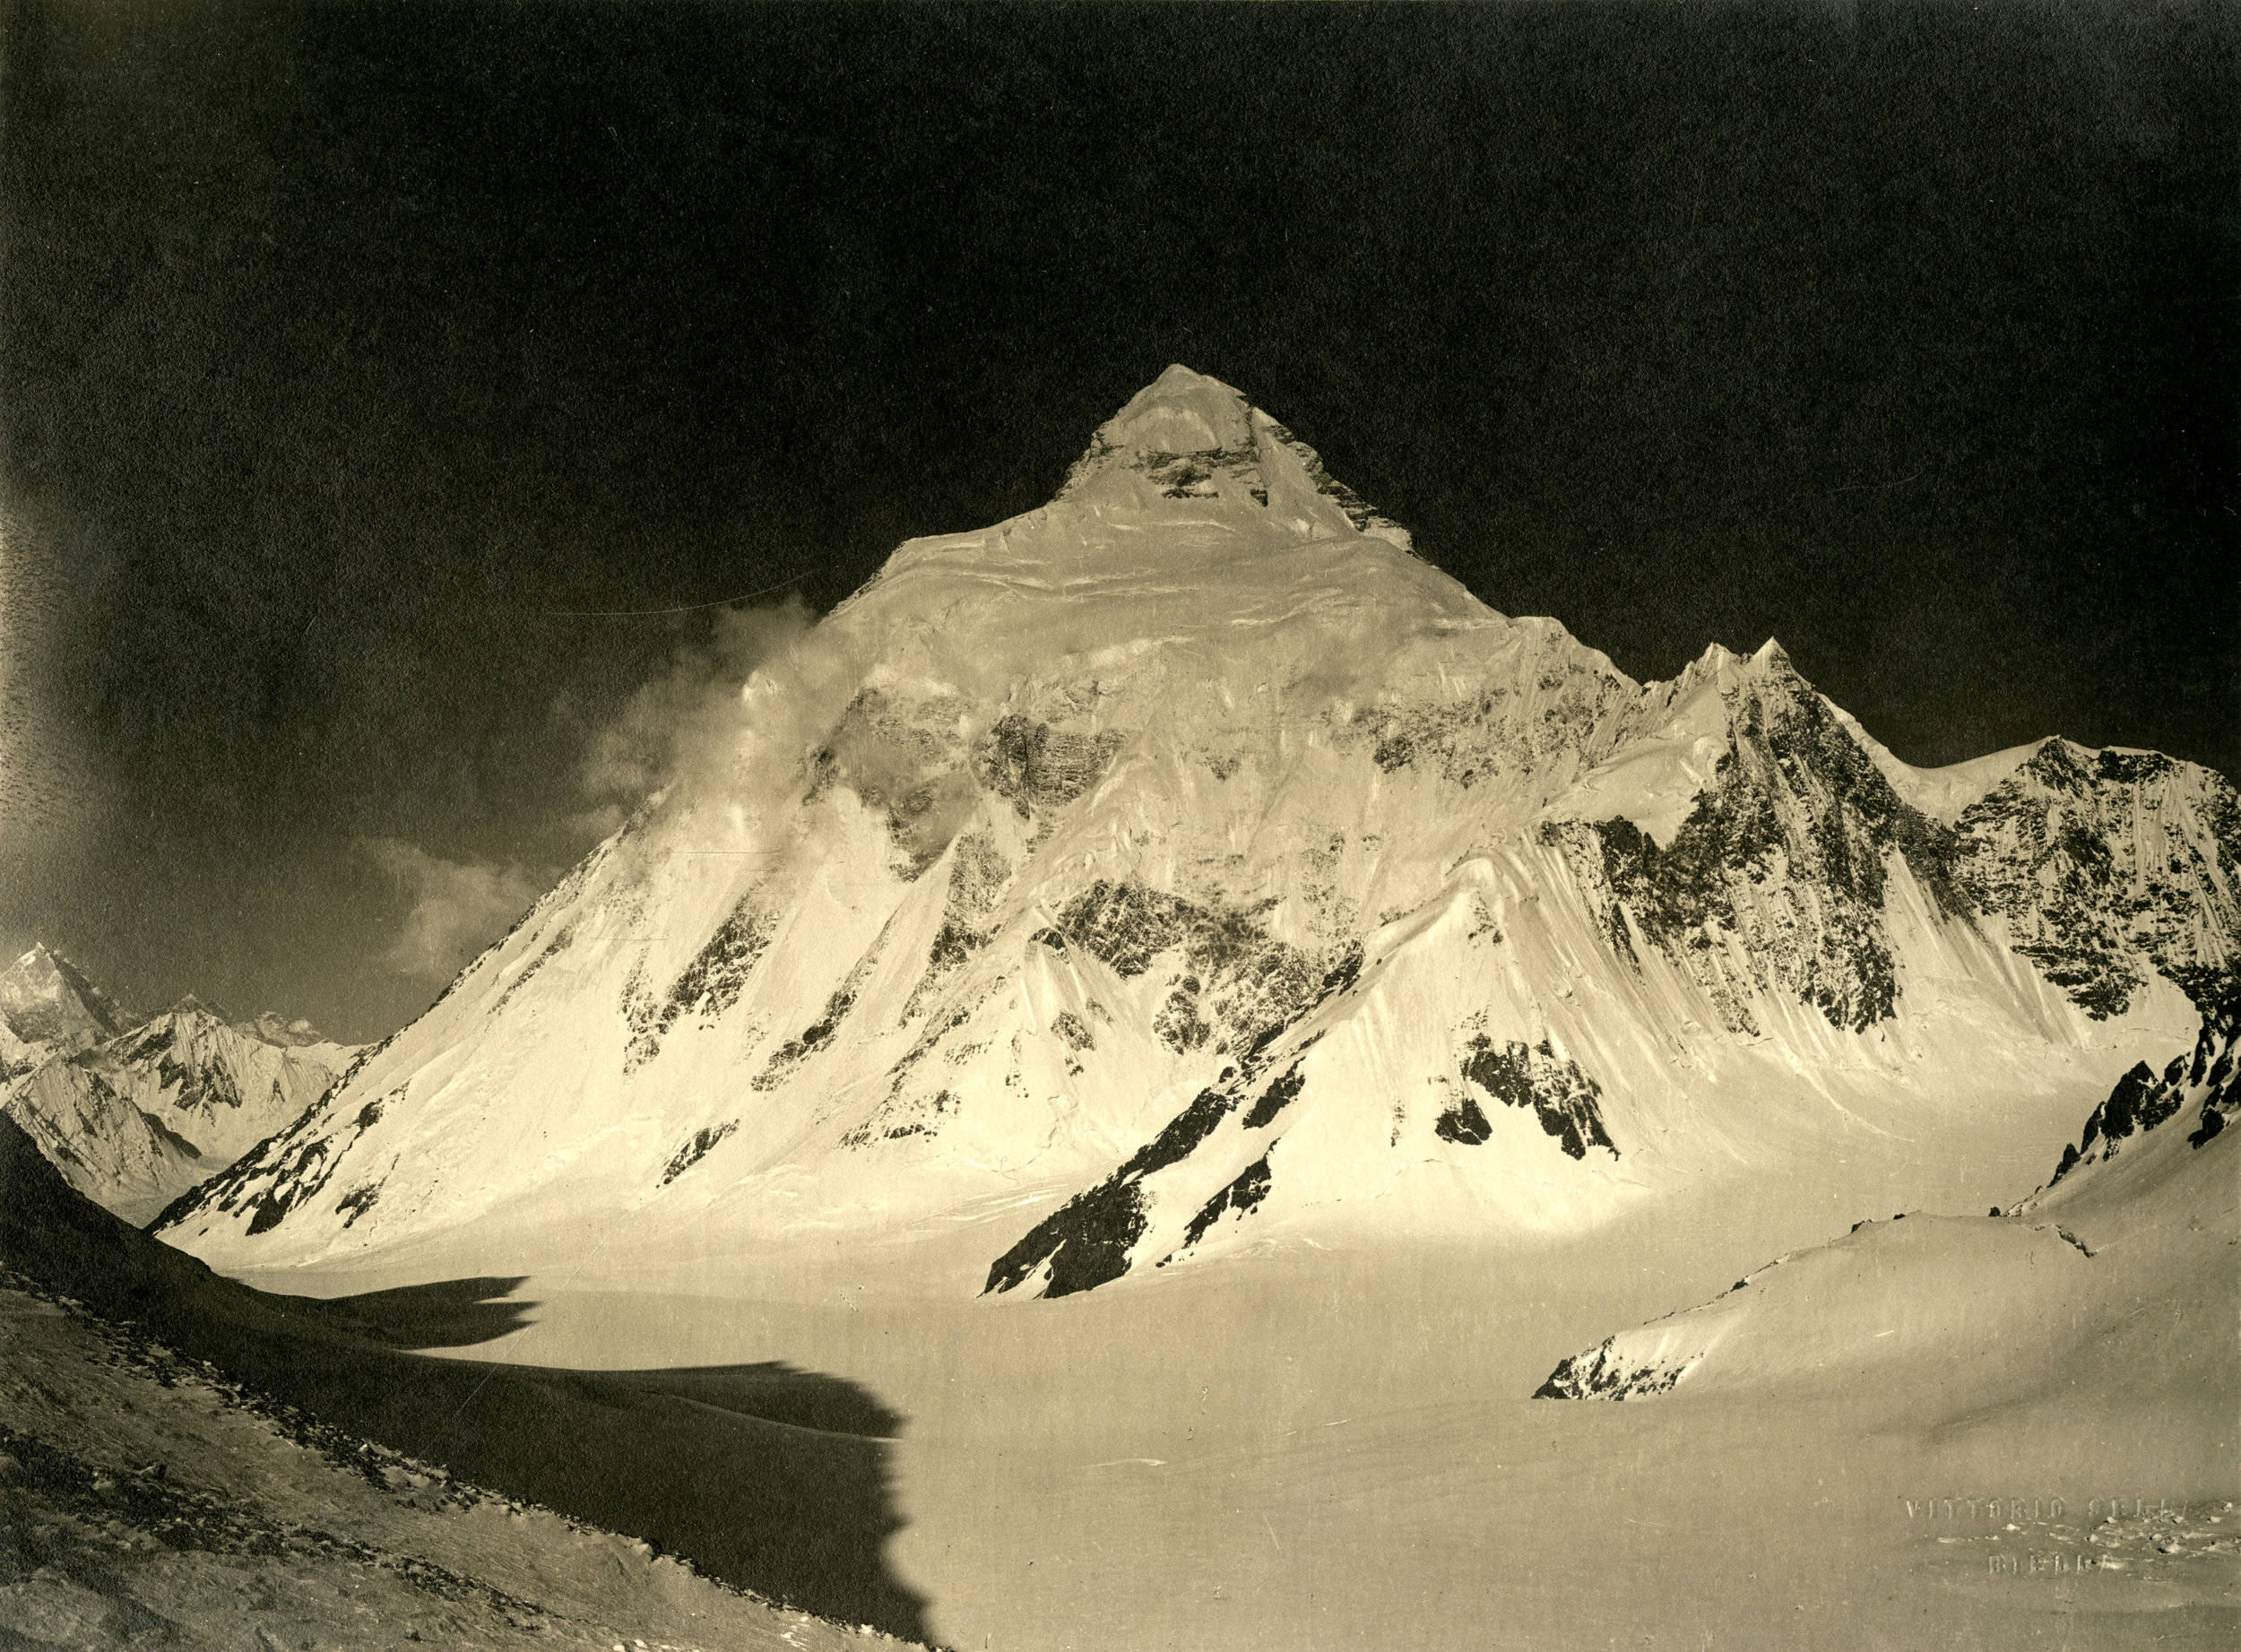 Photograph of K2 from Windy Gap, taken by Vittorio Sella in 1909.  Vittorio Sella Collection